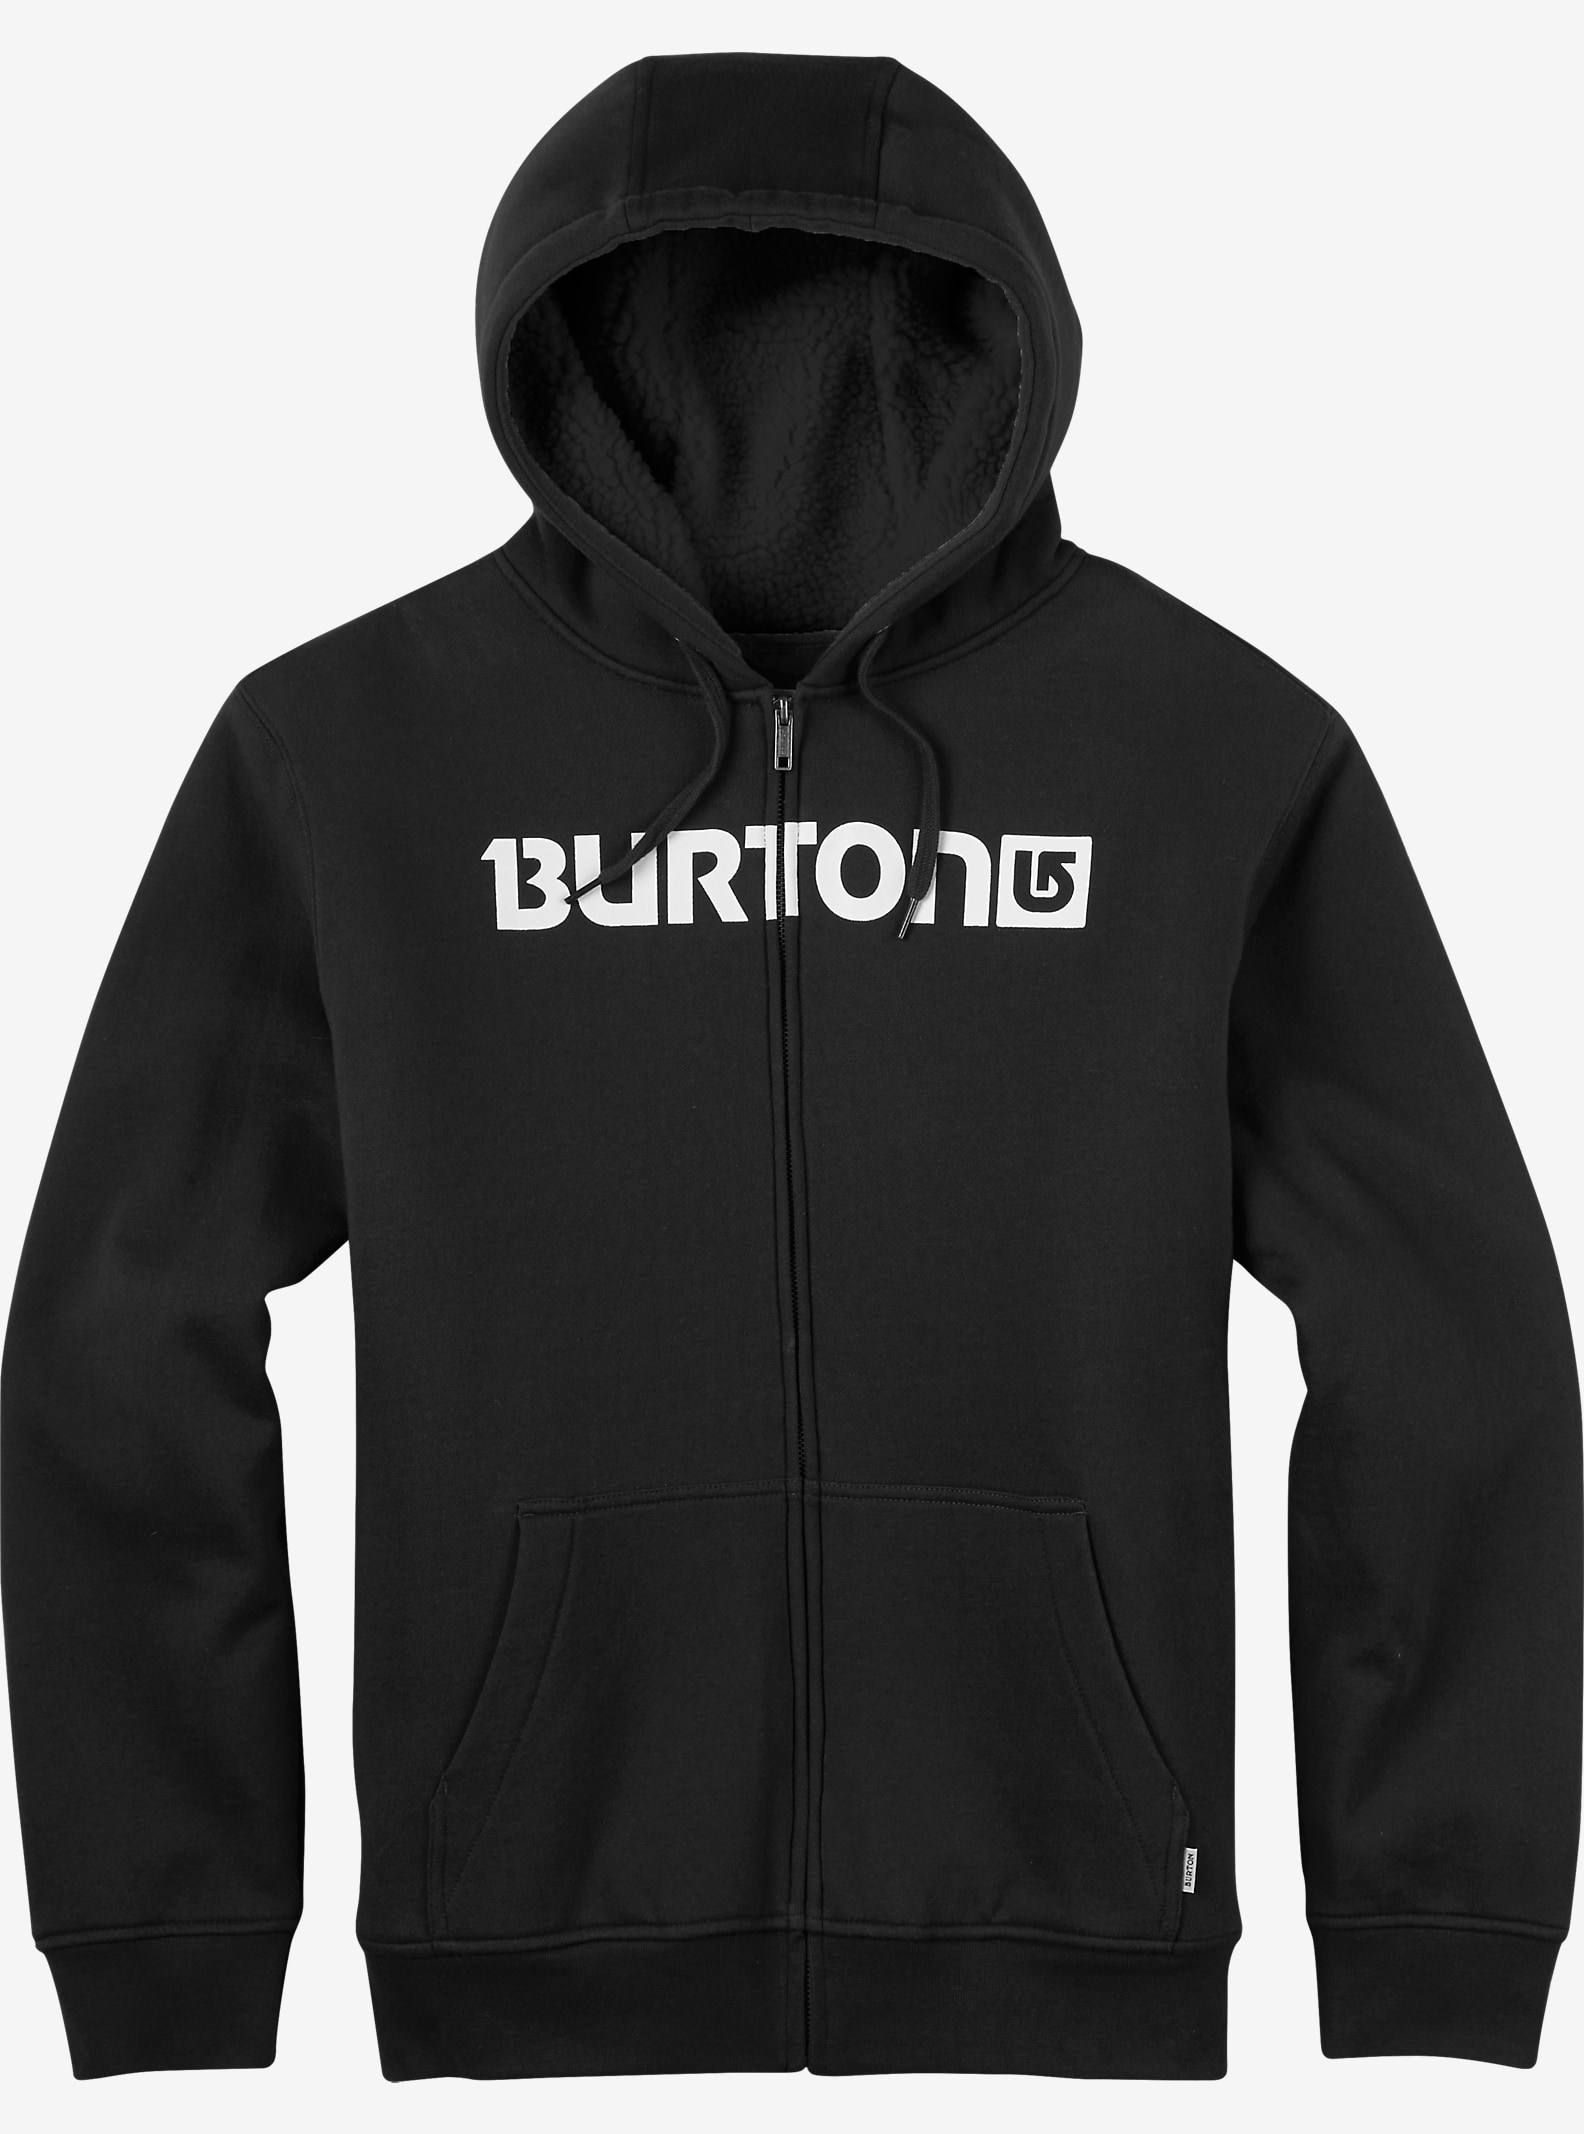 Burton Fireside Full-Zip Hoodie shown in True Black